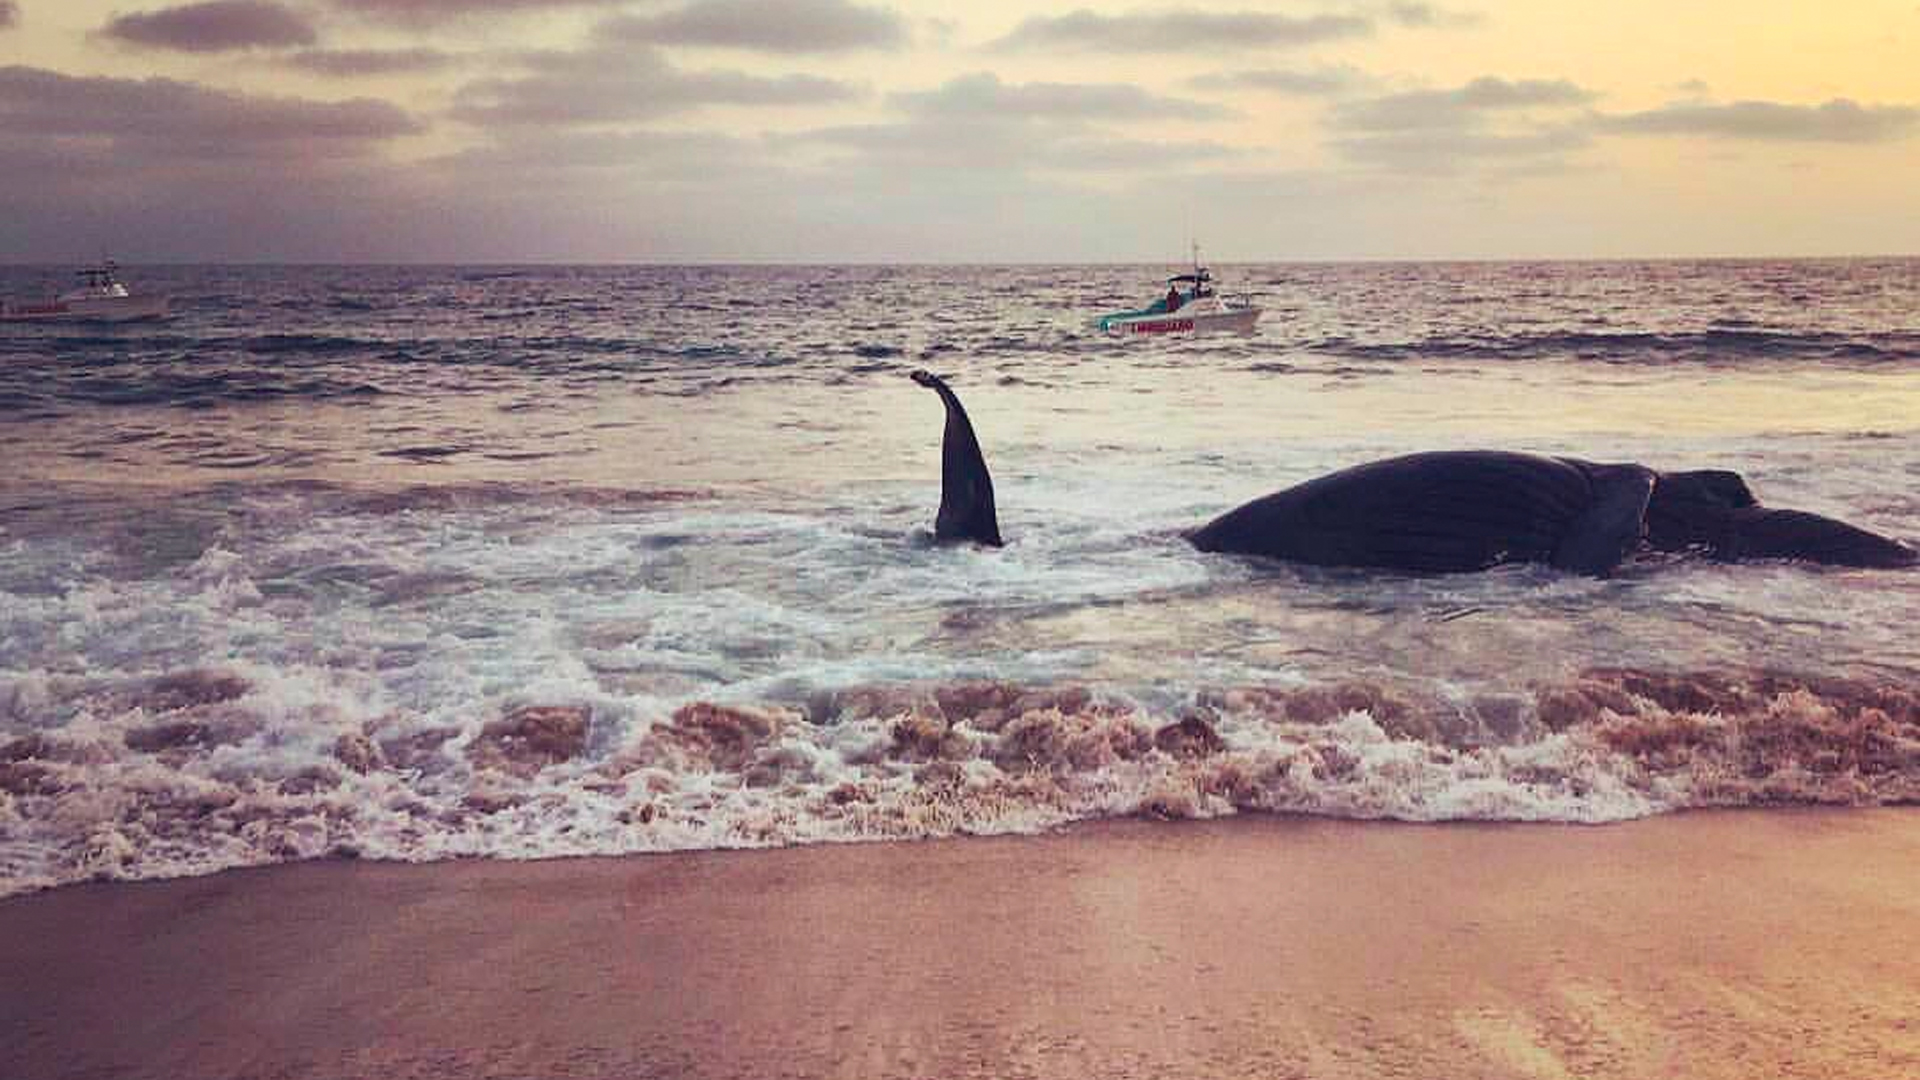 A whale that washed ashore at Dockweiler State Beach is seen in this photo posted to the Los Angeles County Fire Department Lifeguard Division Twitter page.